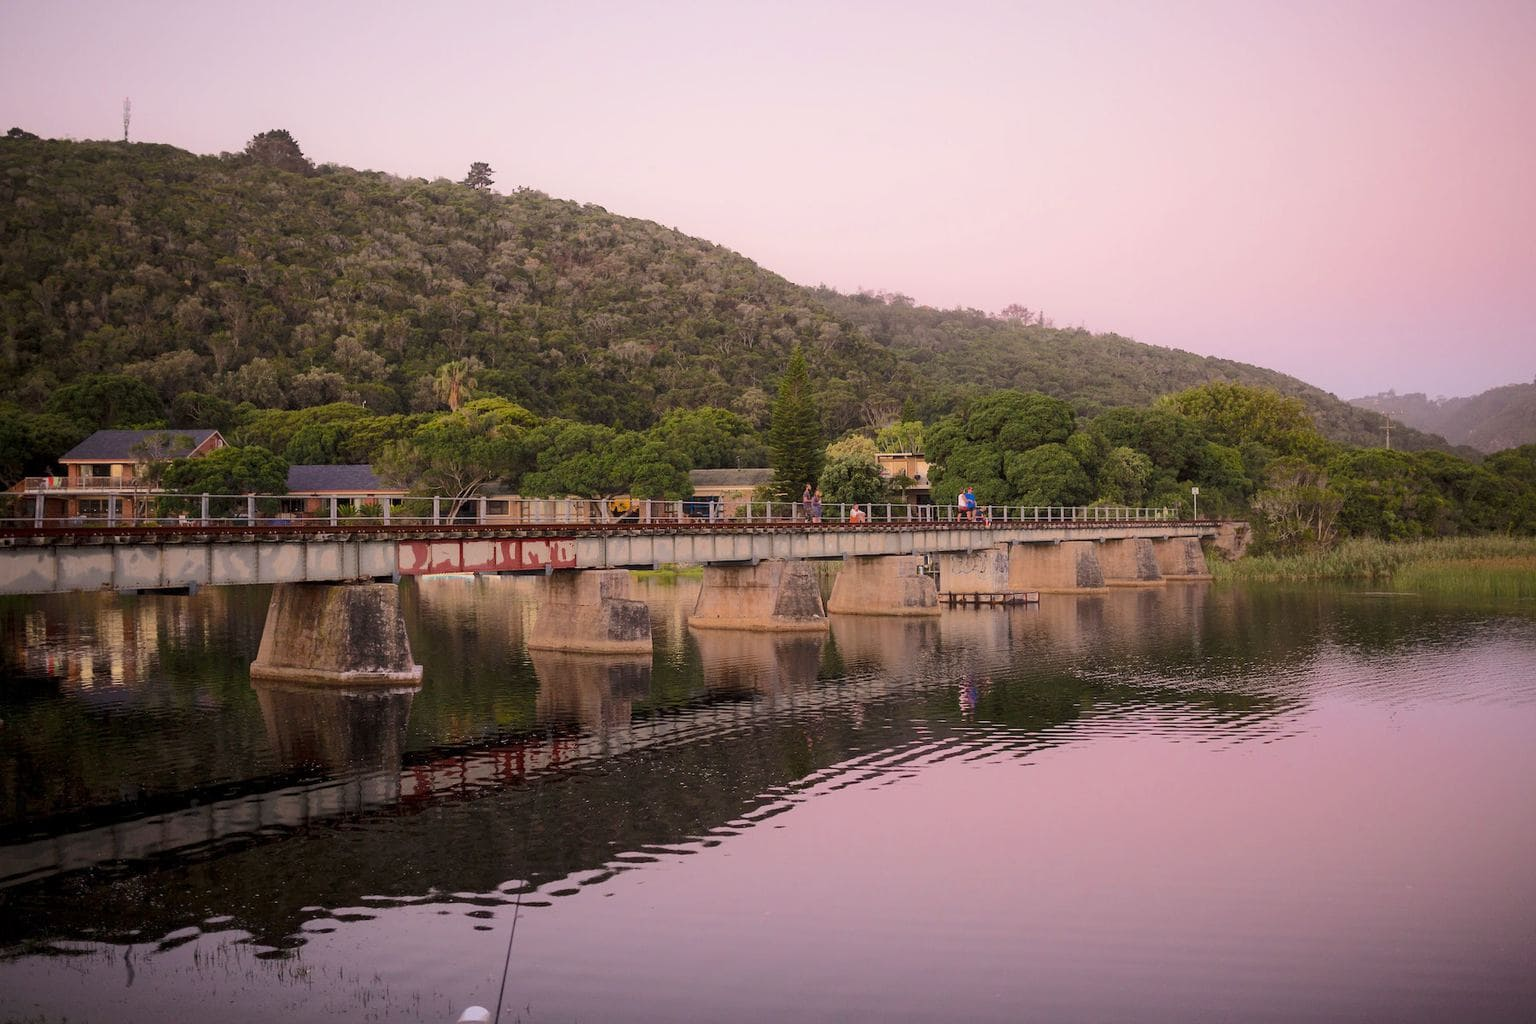 Fishing of the bridge in the Touwsriver